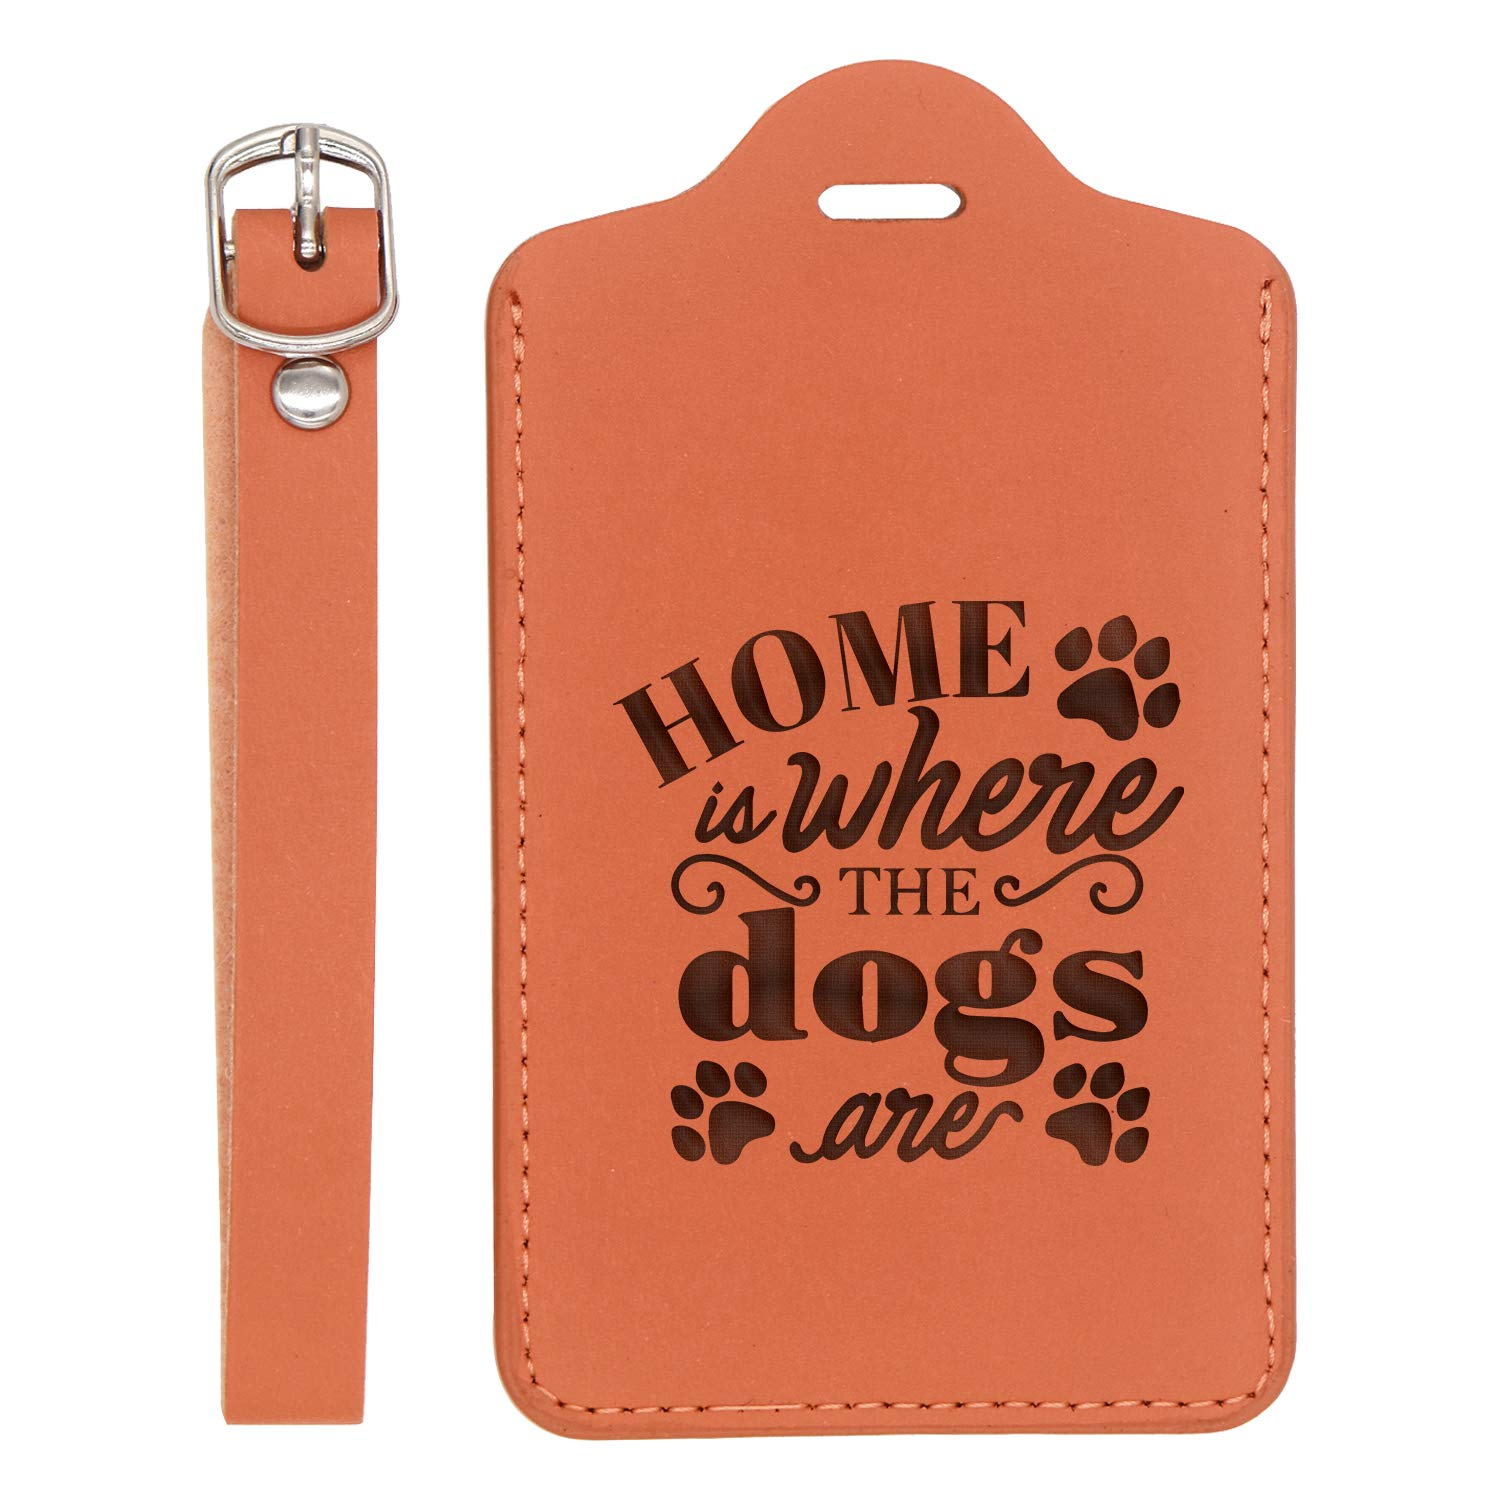 - United States Standard Handcrafted By Mastercraftsmen Dog 2 Engraved Synthetic Pu Leather Luggage Tag For Any Type Of Luggage London Tan - Set Of 2